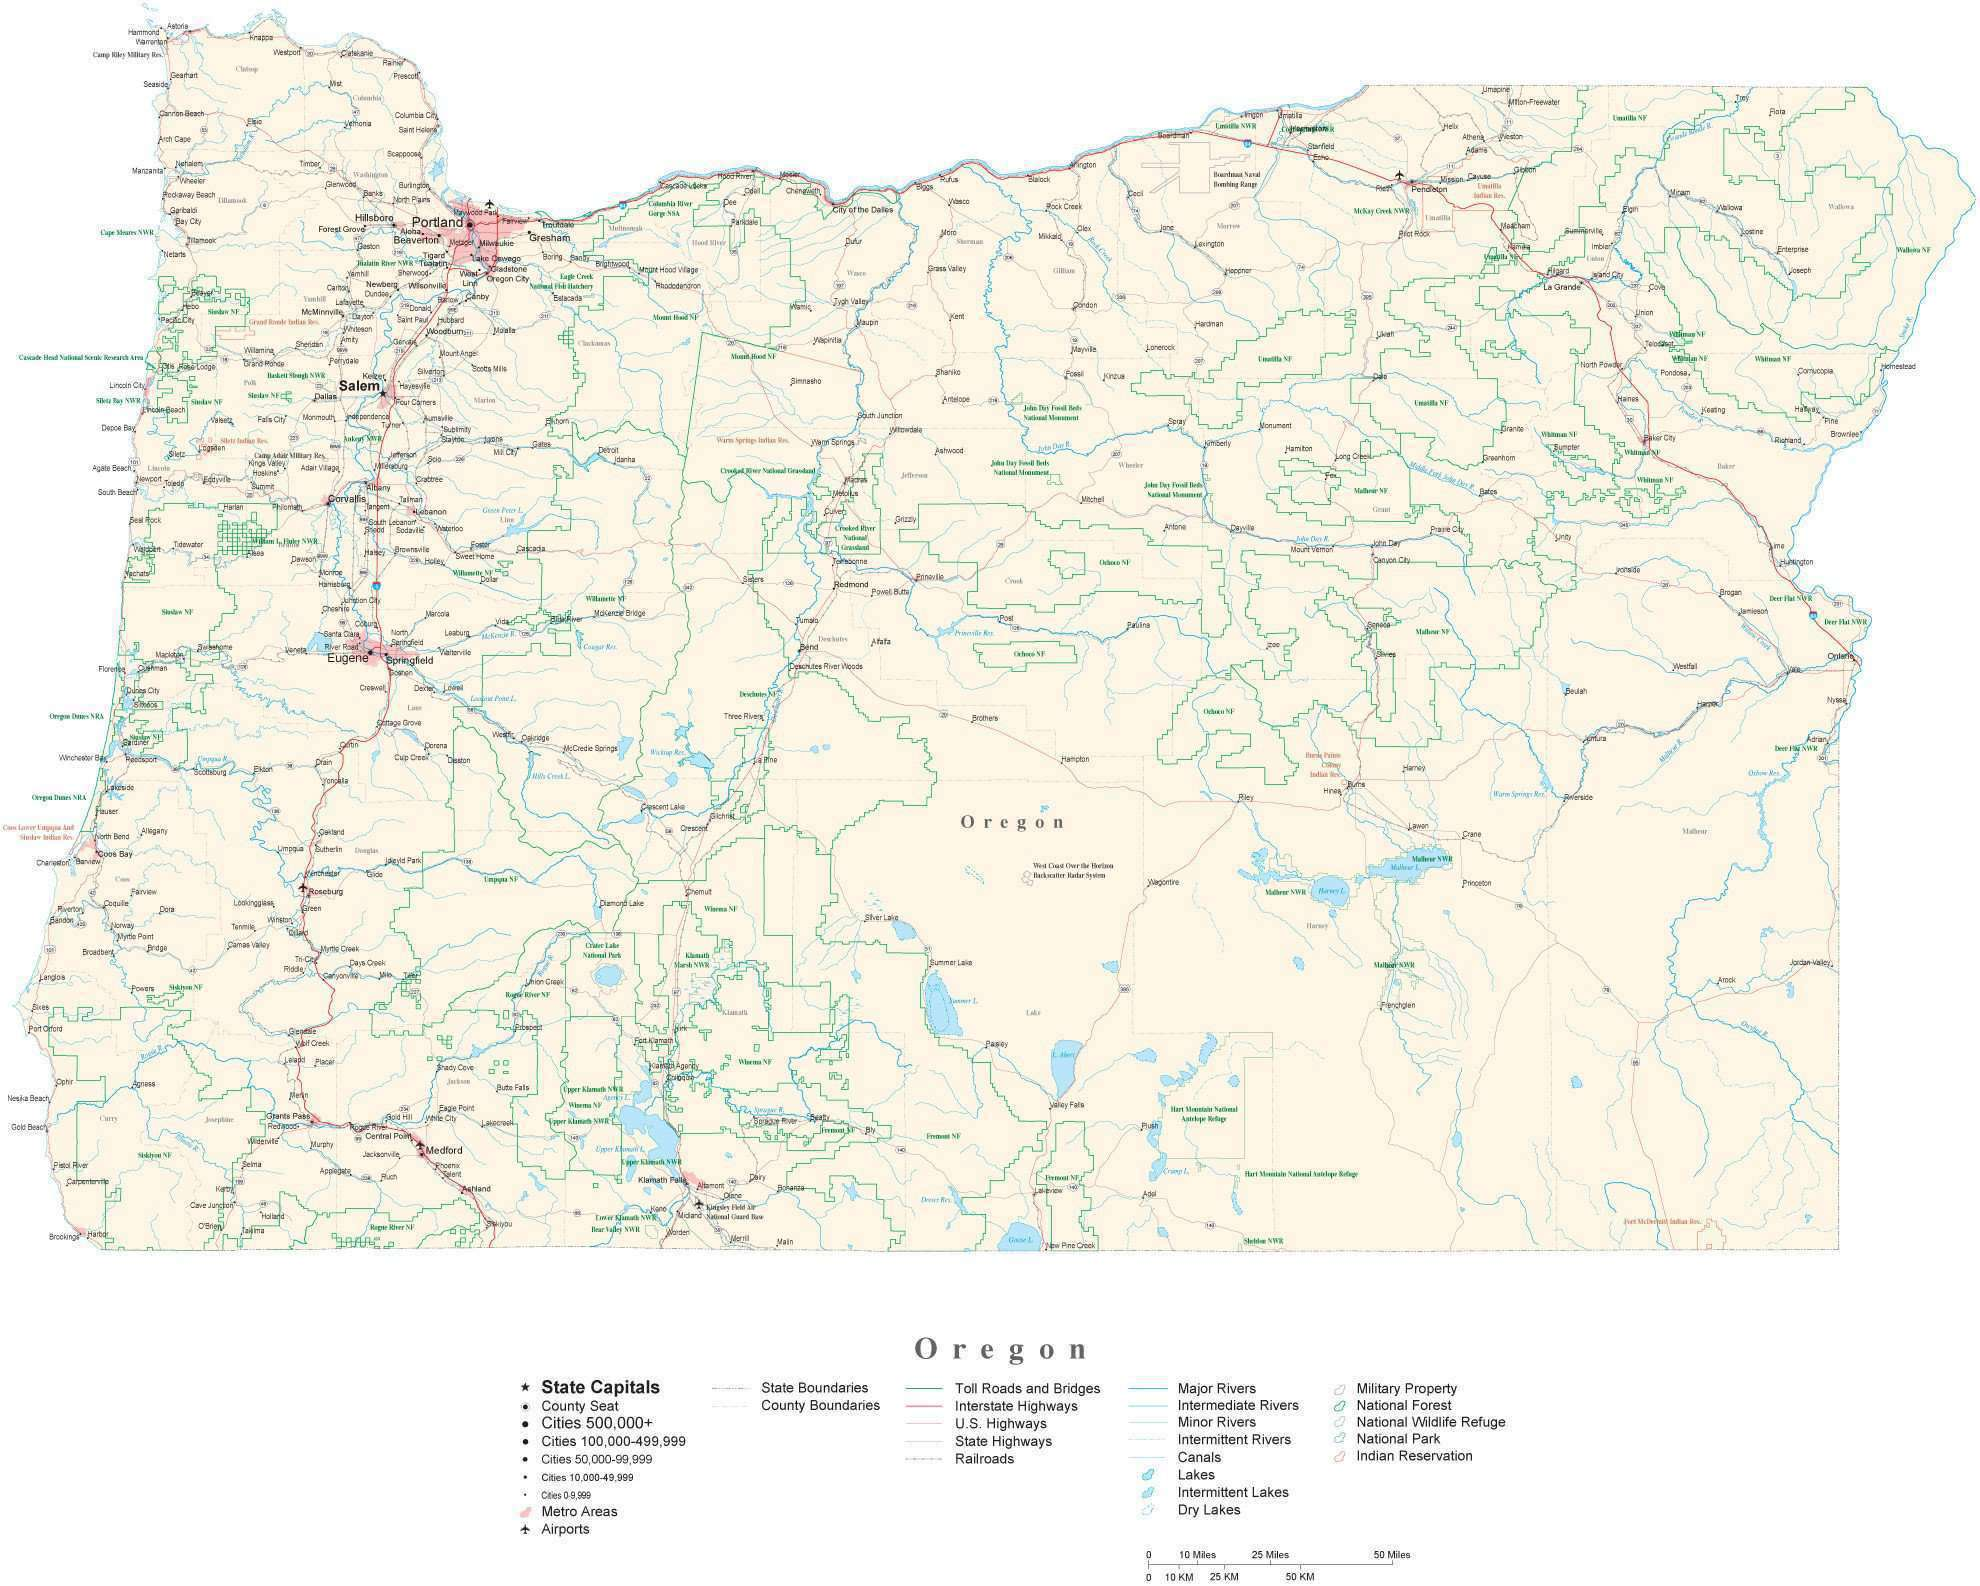 Detailed Oregon Cut Out Style Digital Map With County Boundaries Cities Highways National Parks And More